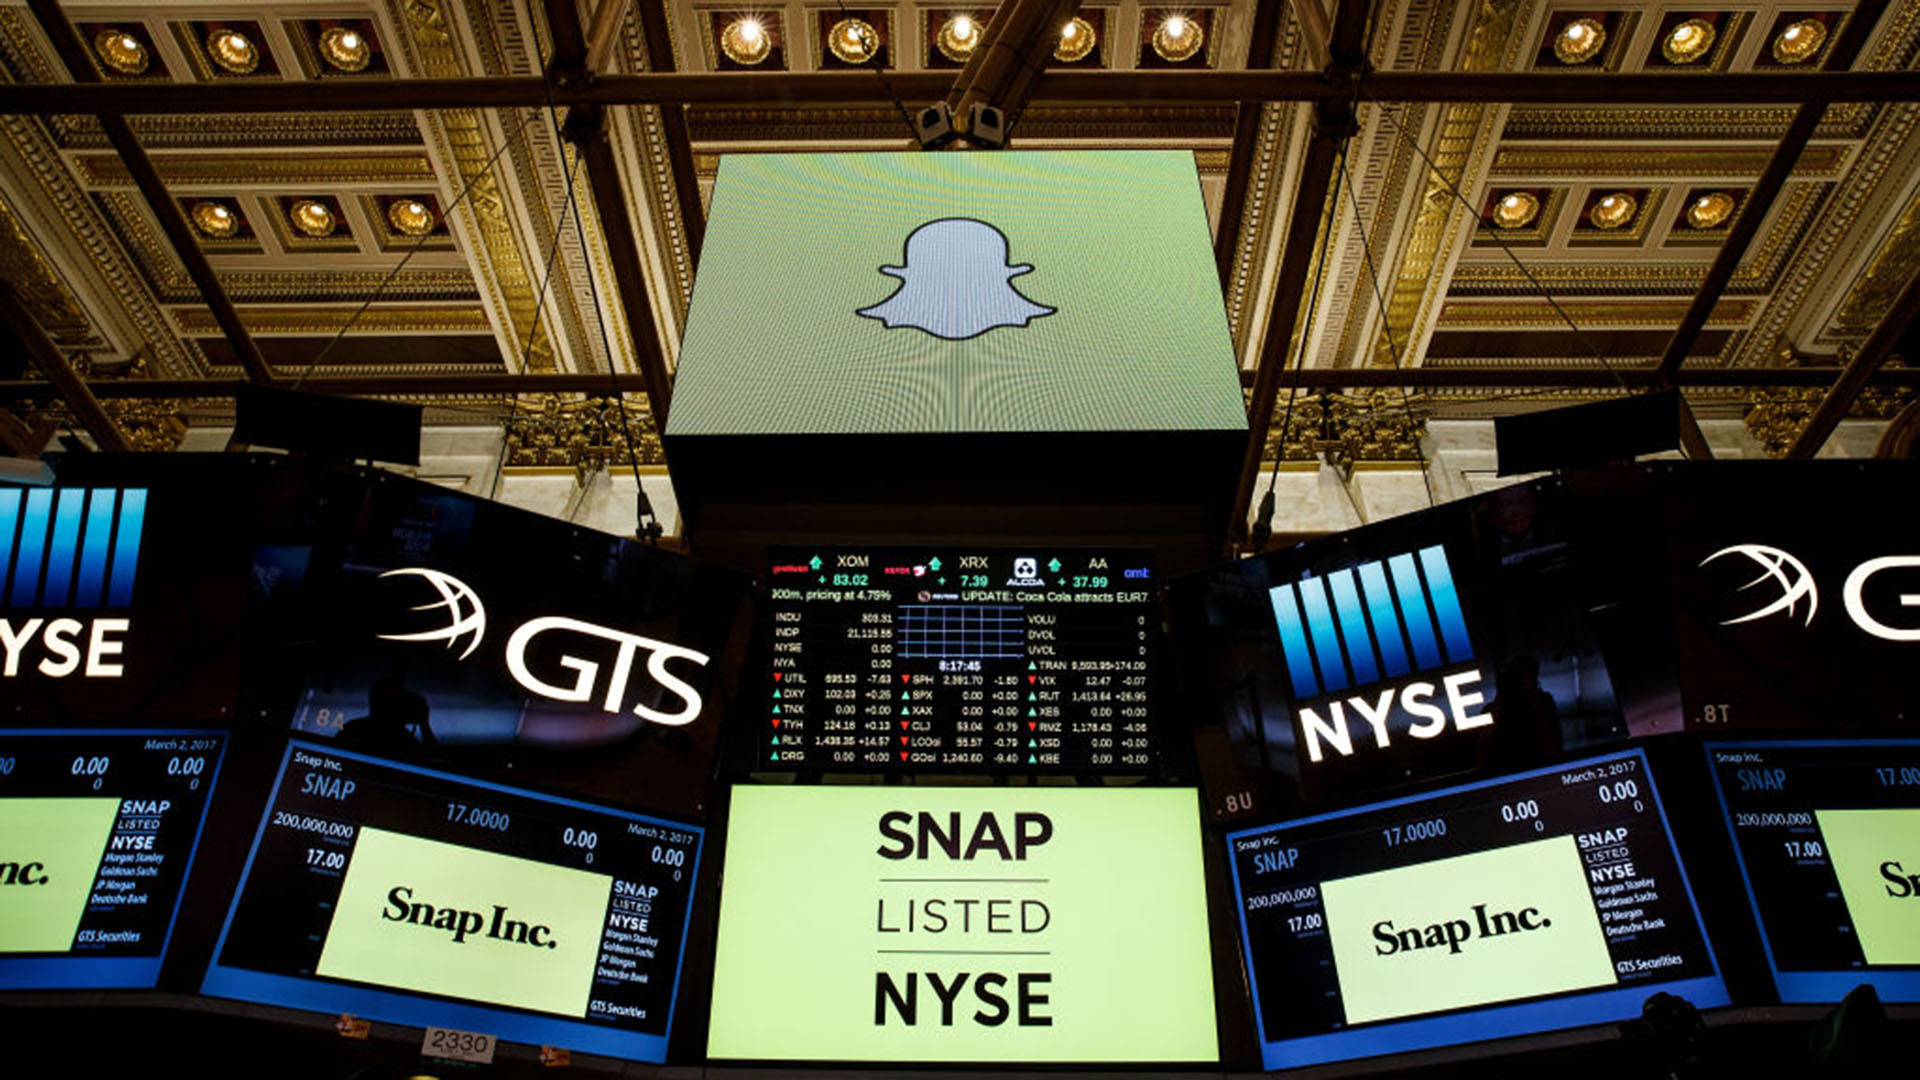 NEW YORK, NY - MARCH 2: Signage for Snap Inc., parent company of Snapchat, is displayed on monitors on the floor New York Stock Exchange (NYSE) before the opening bell, March 2, 2017 in New York City. Snap Inc. priced its initial public offering at $17 a share on Wednesday and Snap shares will start trading on the New York Stock Exchange (NYSE) on Thursday. (Photo by Drew Angerer/Getty Images)